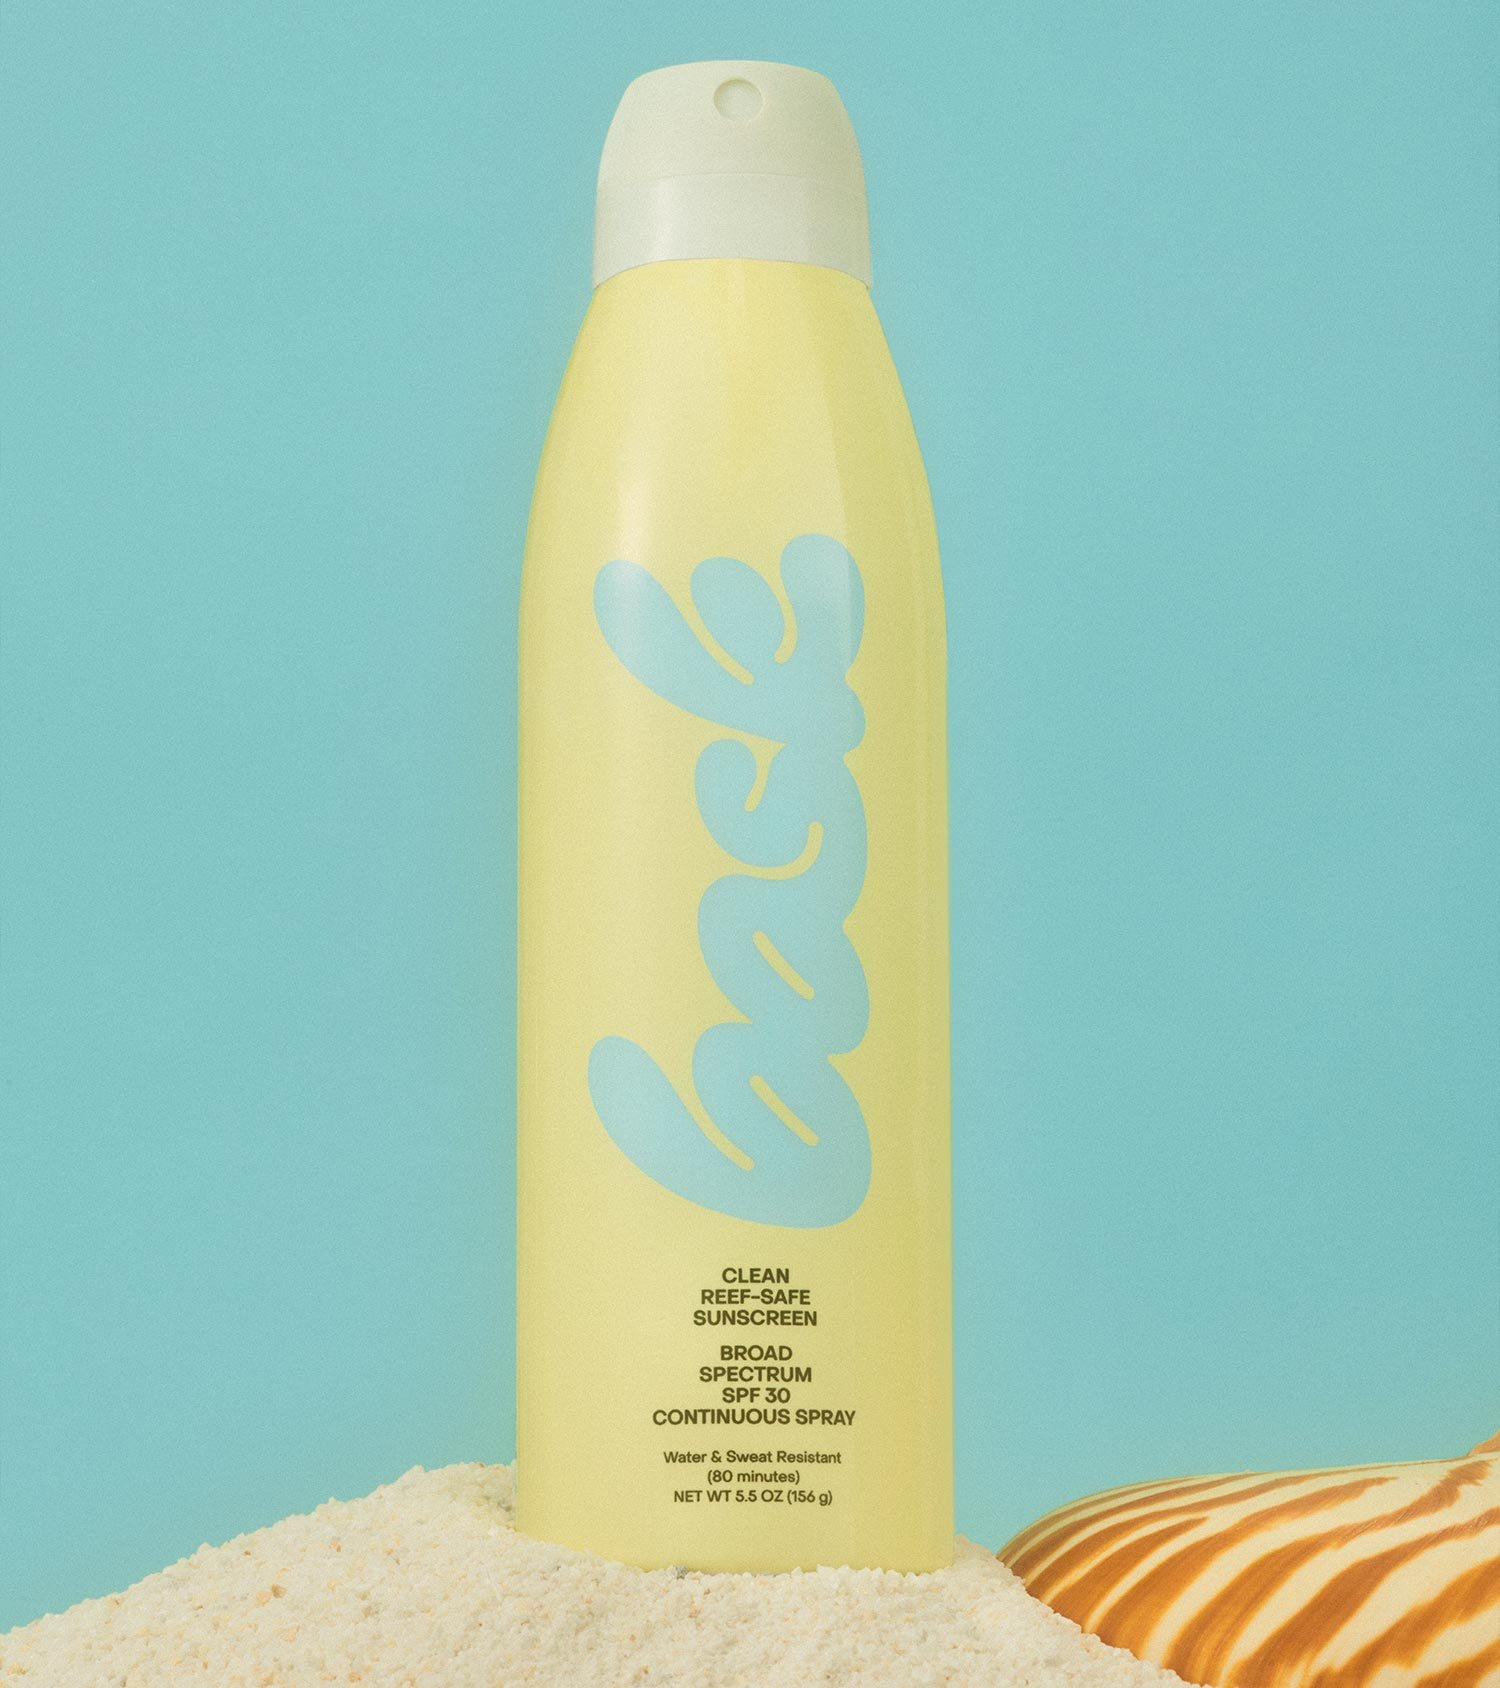 Bask Suncare Yellow Continuous Spray Sunscreen Bottle on Sand with Sea Shell on a Blue Background, Art Direction by RoAndCo